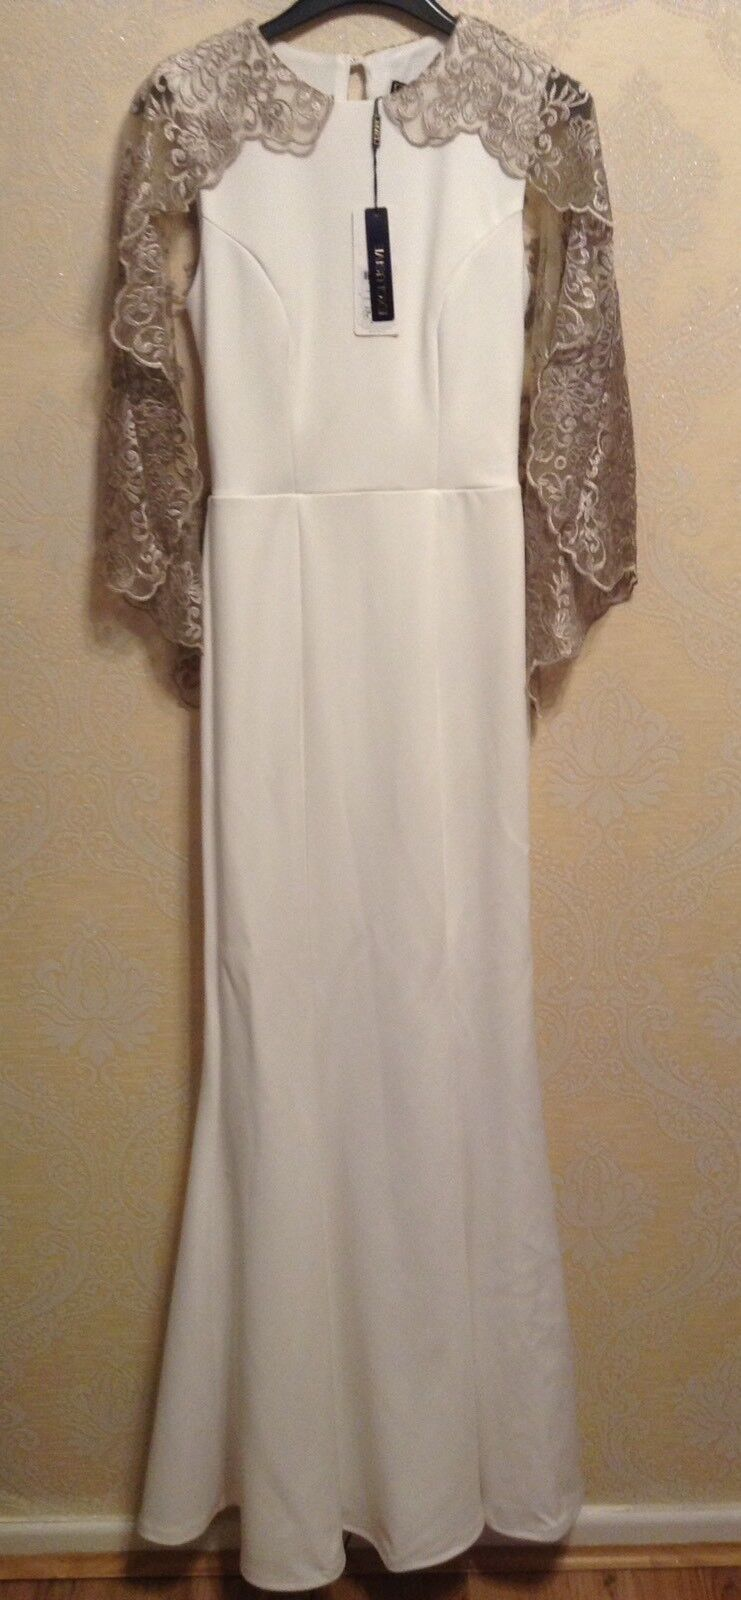 BNWT ️LIPSY ️ Size 8 WHITE AND FAWN GORGIE LACE CAPE SLEEVED MAXI DRESS GOWN NEW